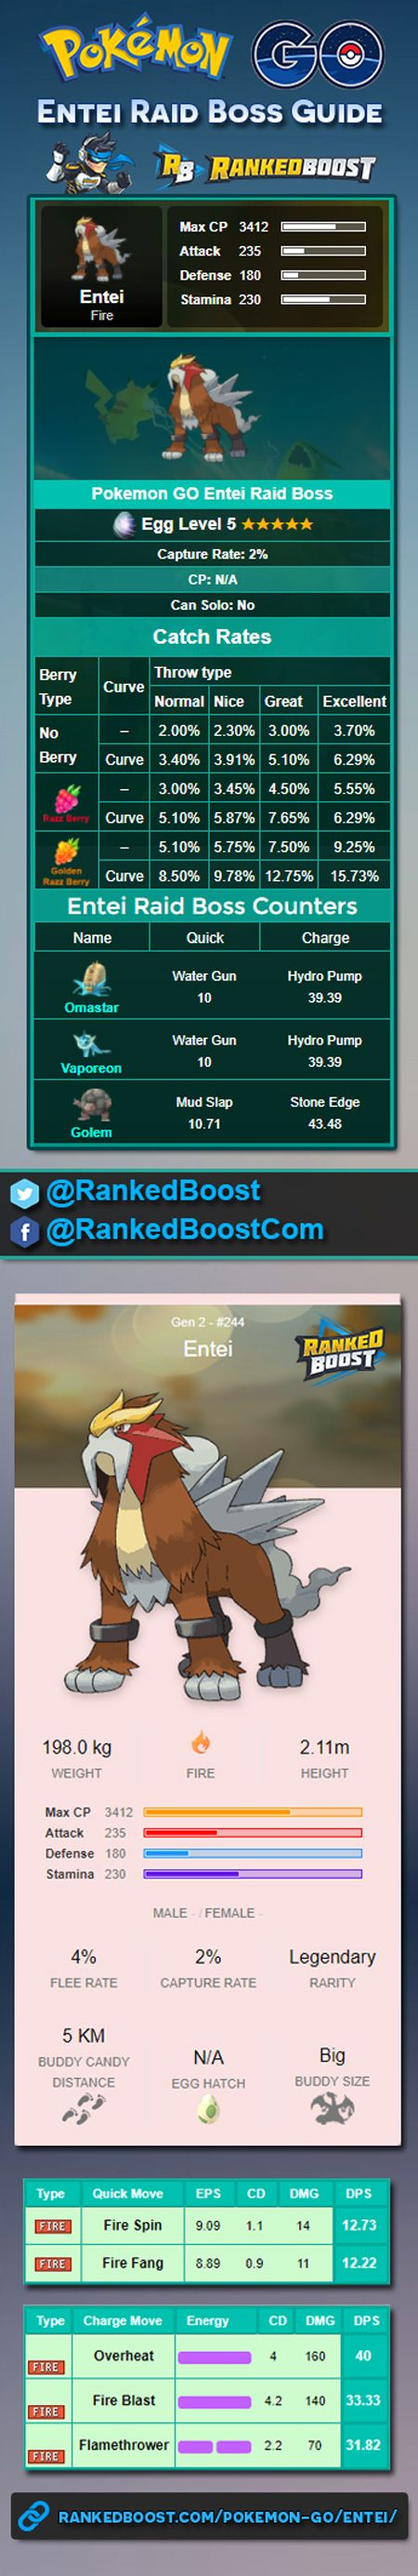 Pokemon GO Entei Raid Boss Guide - Catch Rates, Pokemon Counters, Moves and Stats.